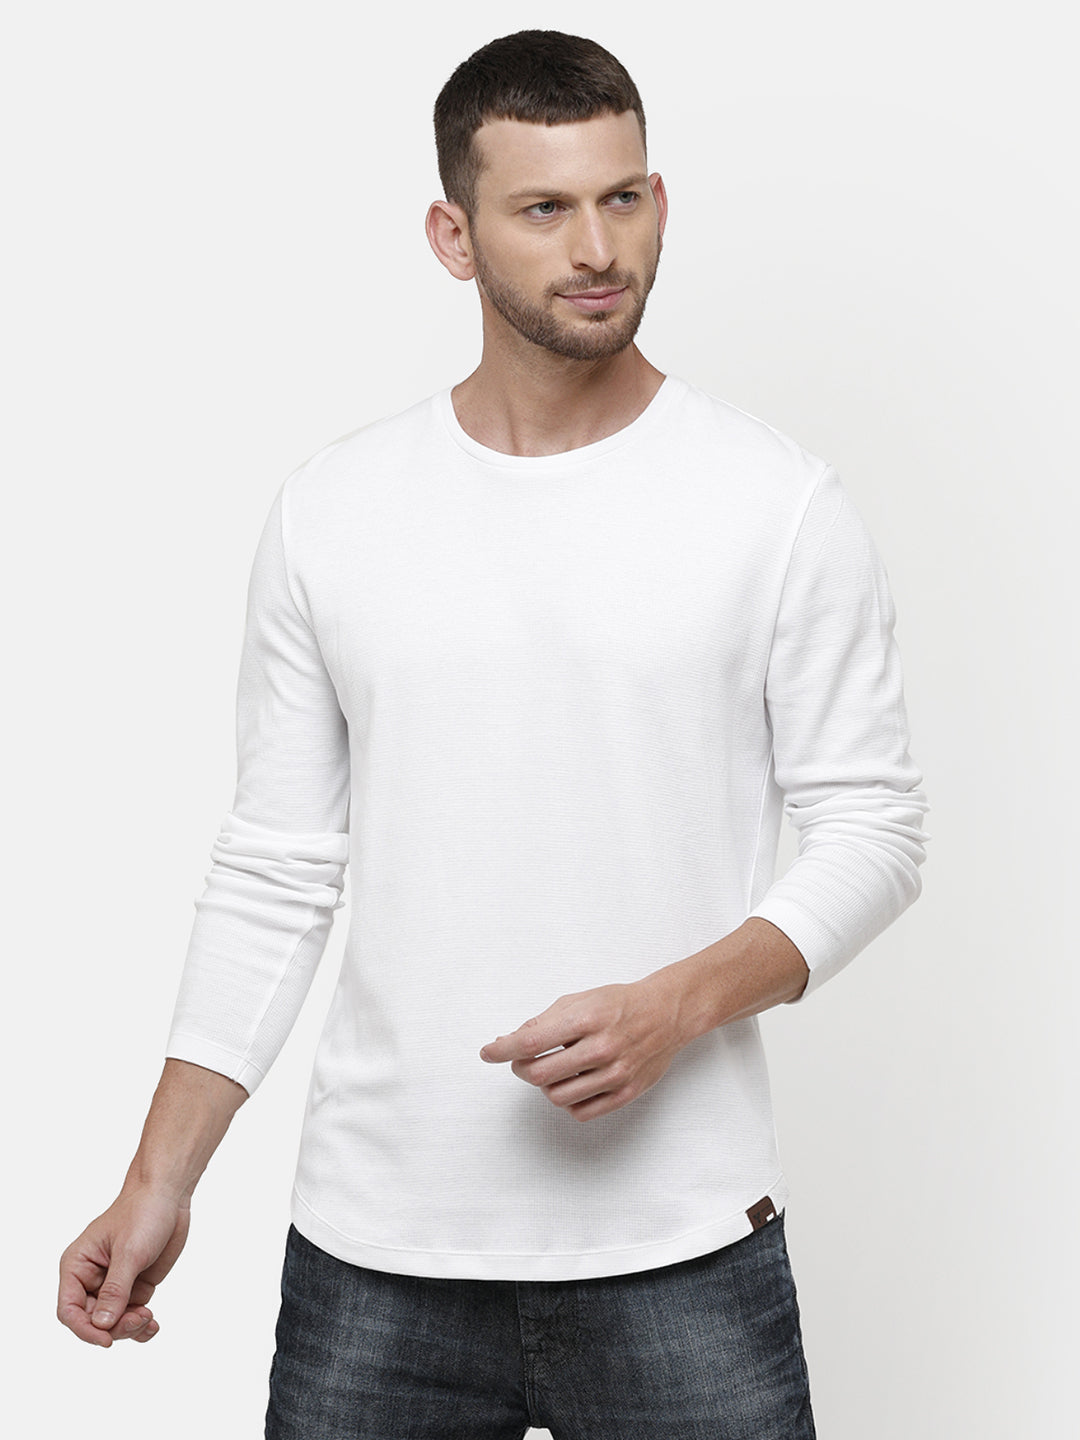 Men's Knitted round neck full sleeve white T-shirt